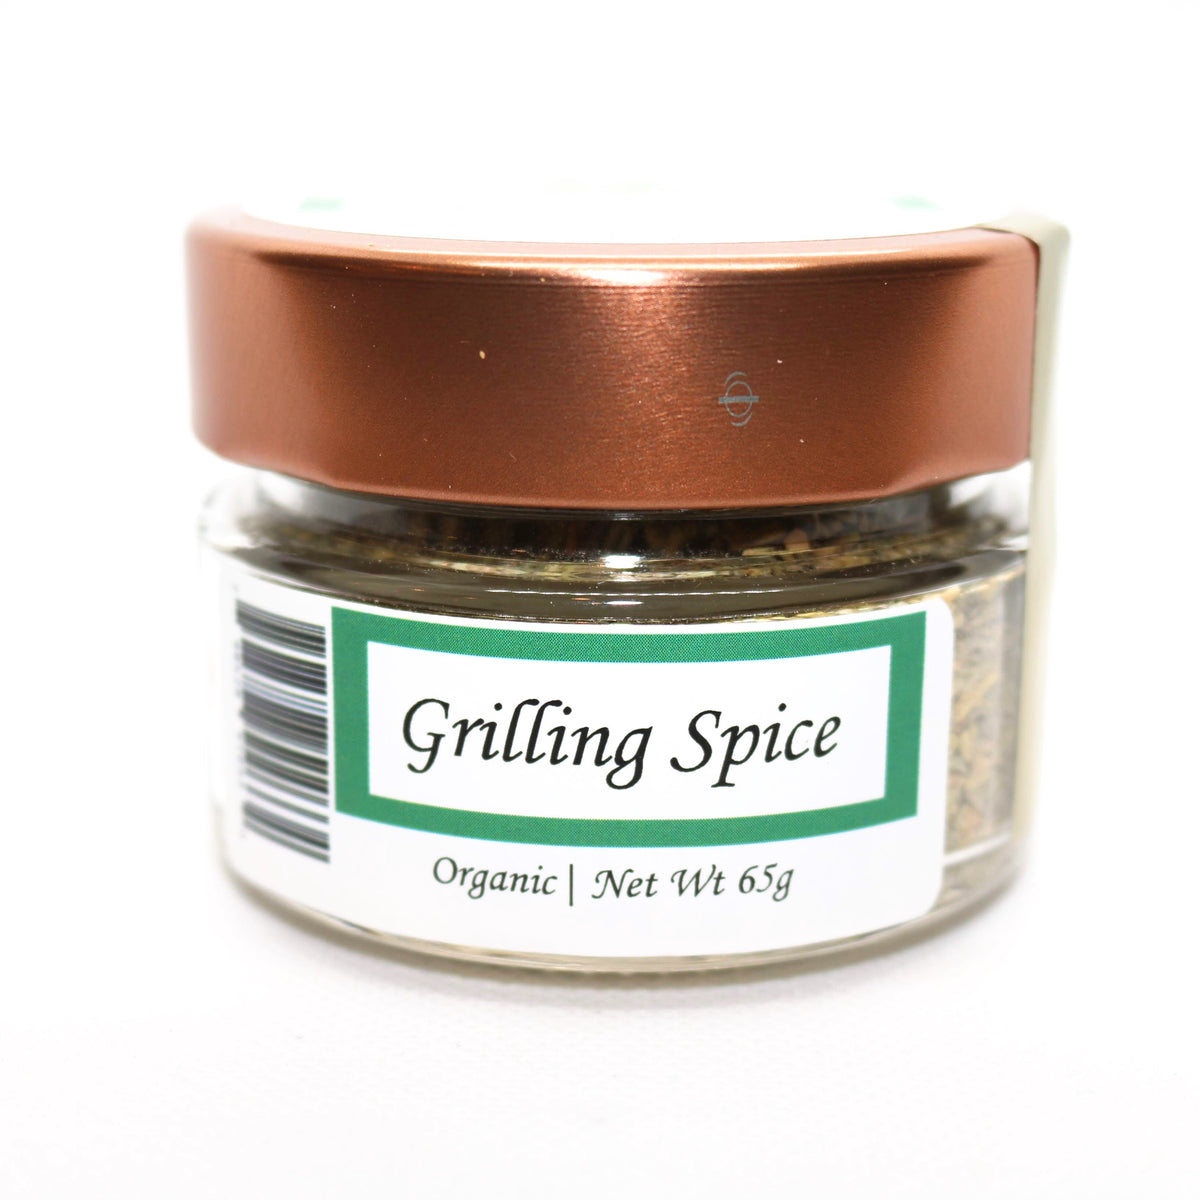 Chalice Spice Organic Grilling Spice